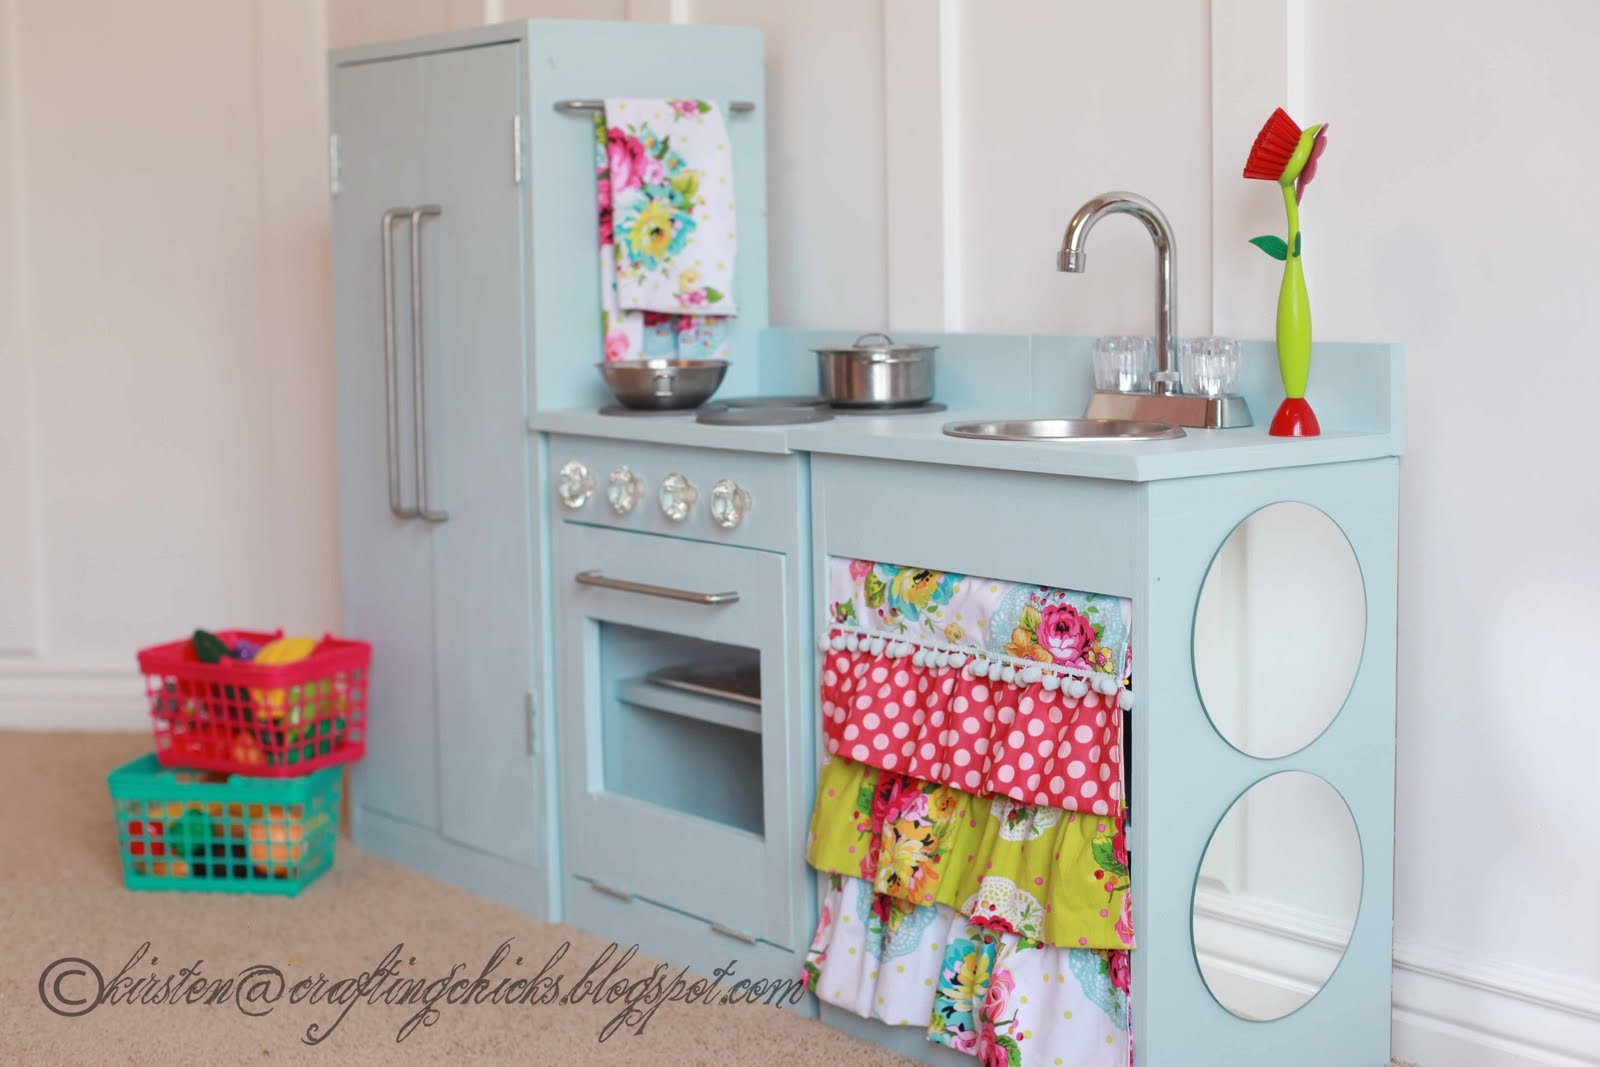 Childrens Wooden Kitchen Set Plans